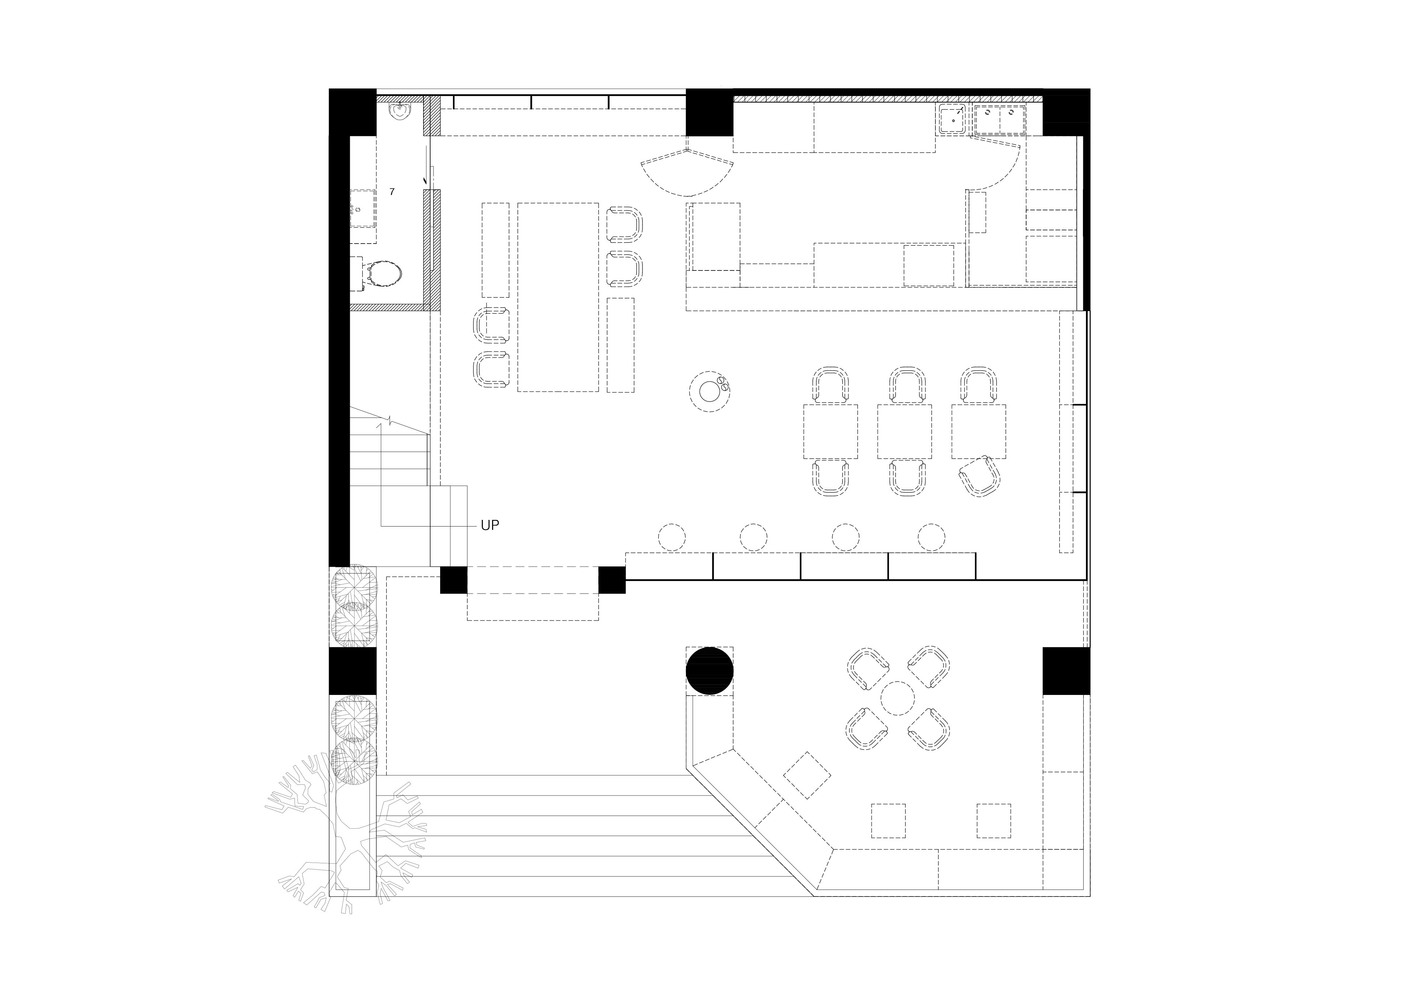 gallery of storyline cafe junsekino architect and design 26 storyline cafe floor plan